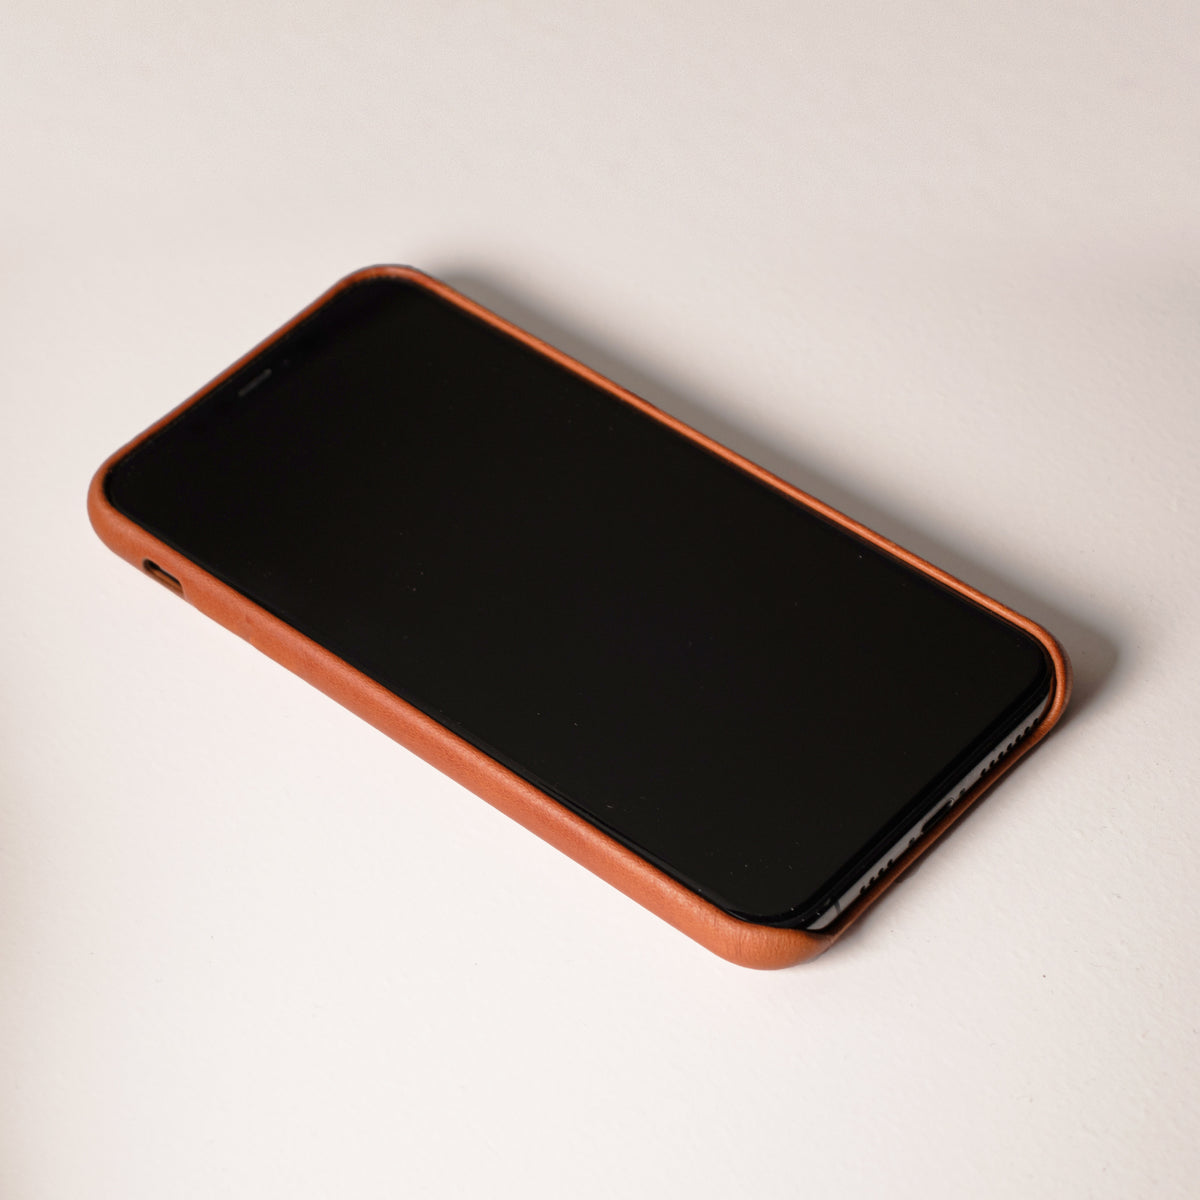 iPhone Leather Shell Case - Saddle Brown - RYAN London